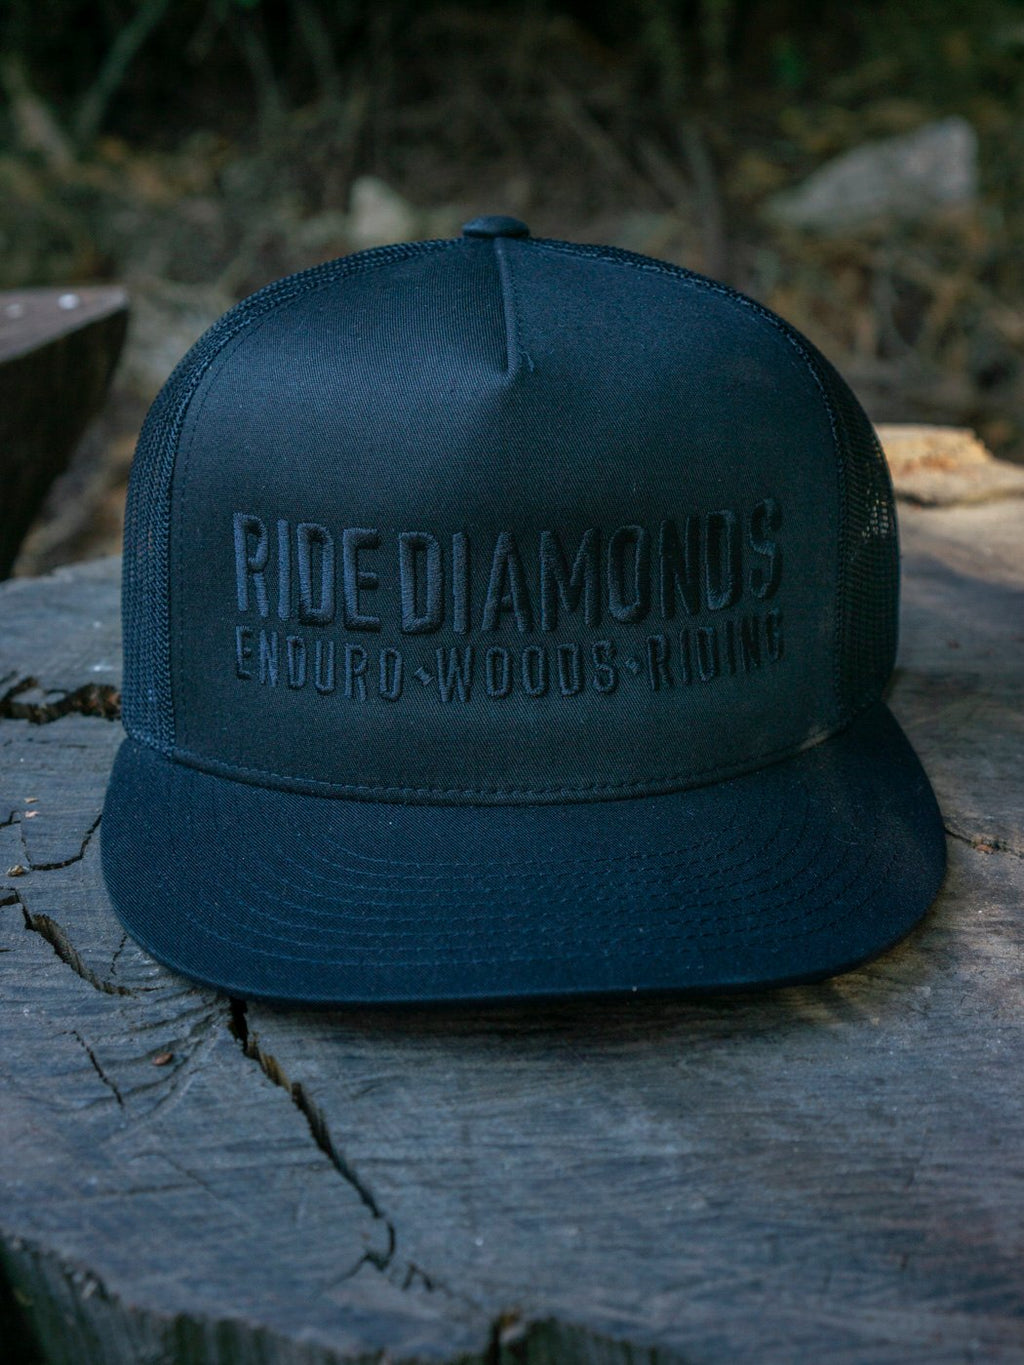 Ride Diamonds stealth hat